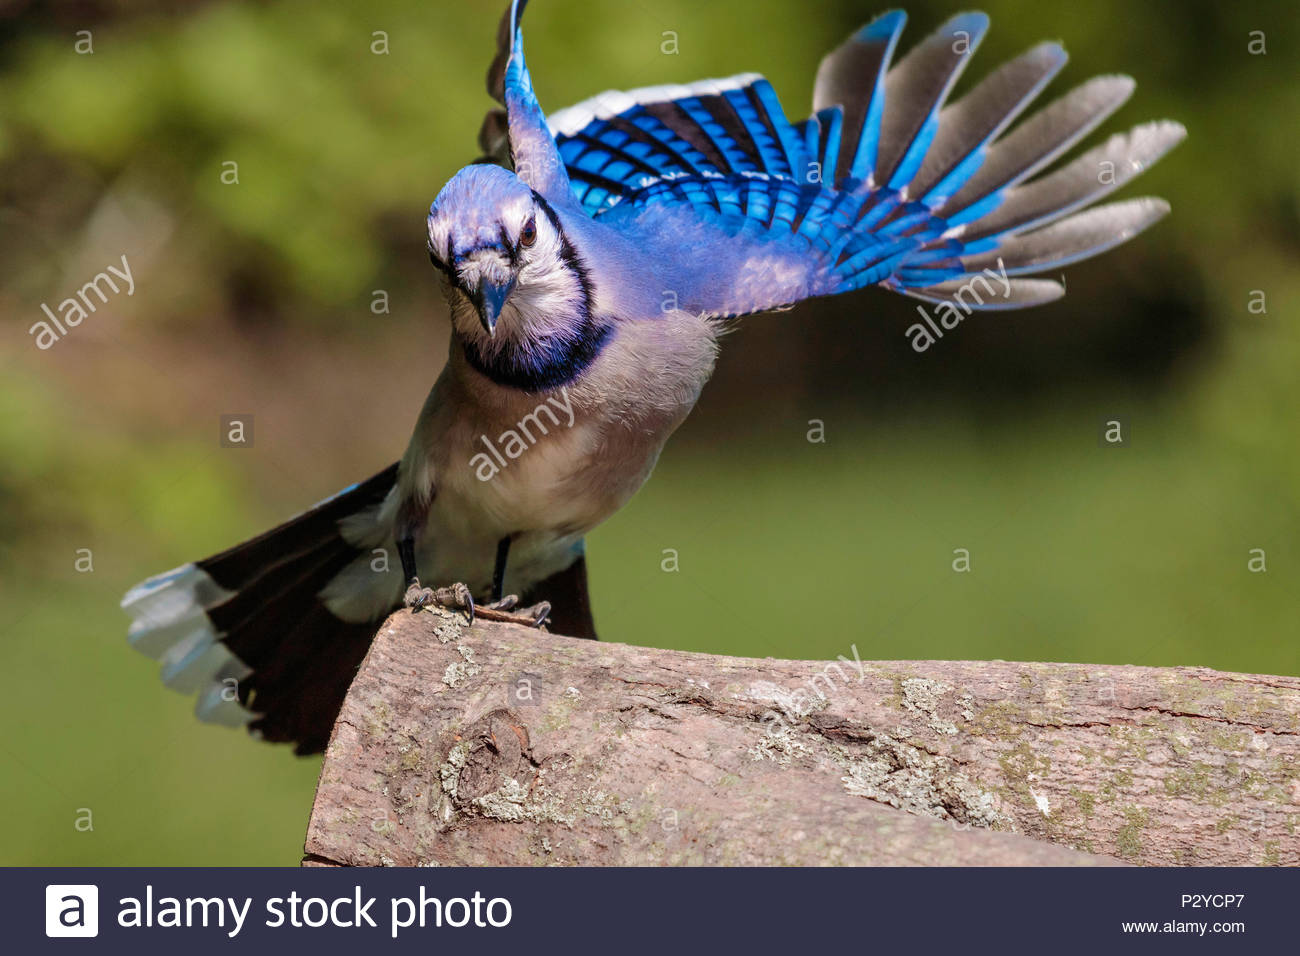 Blue jay Cyanocitta cristata landing showing structural coloration - Stock Image